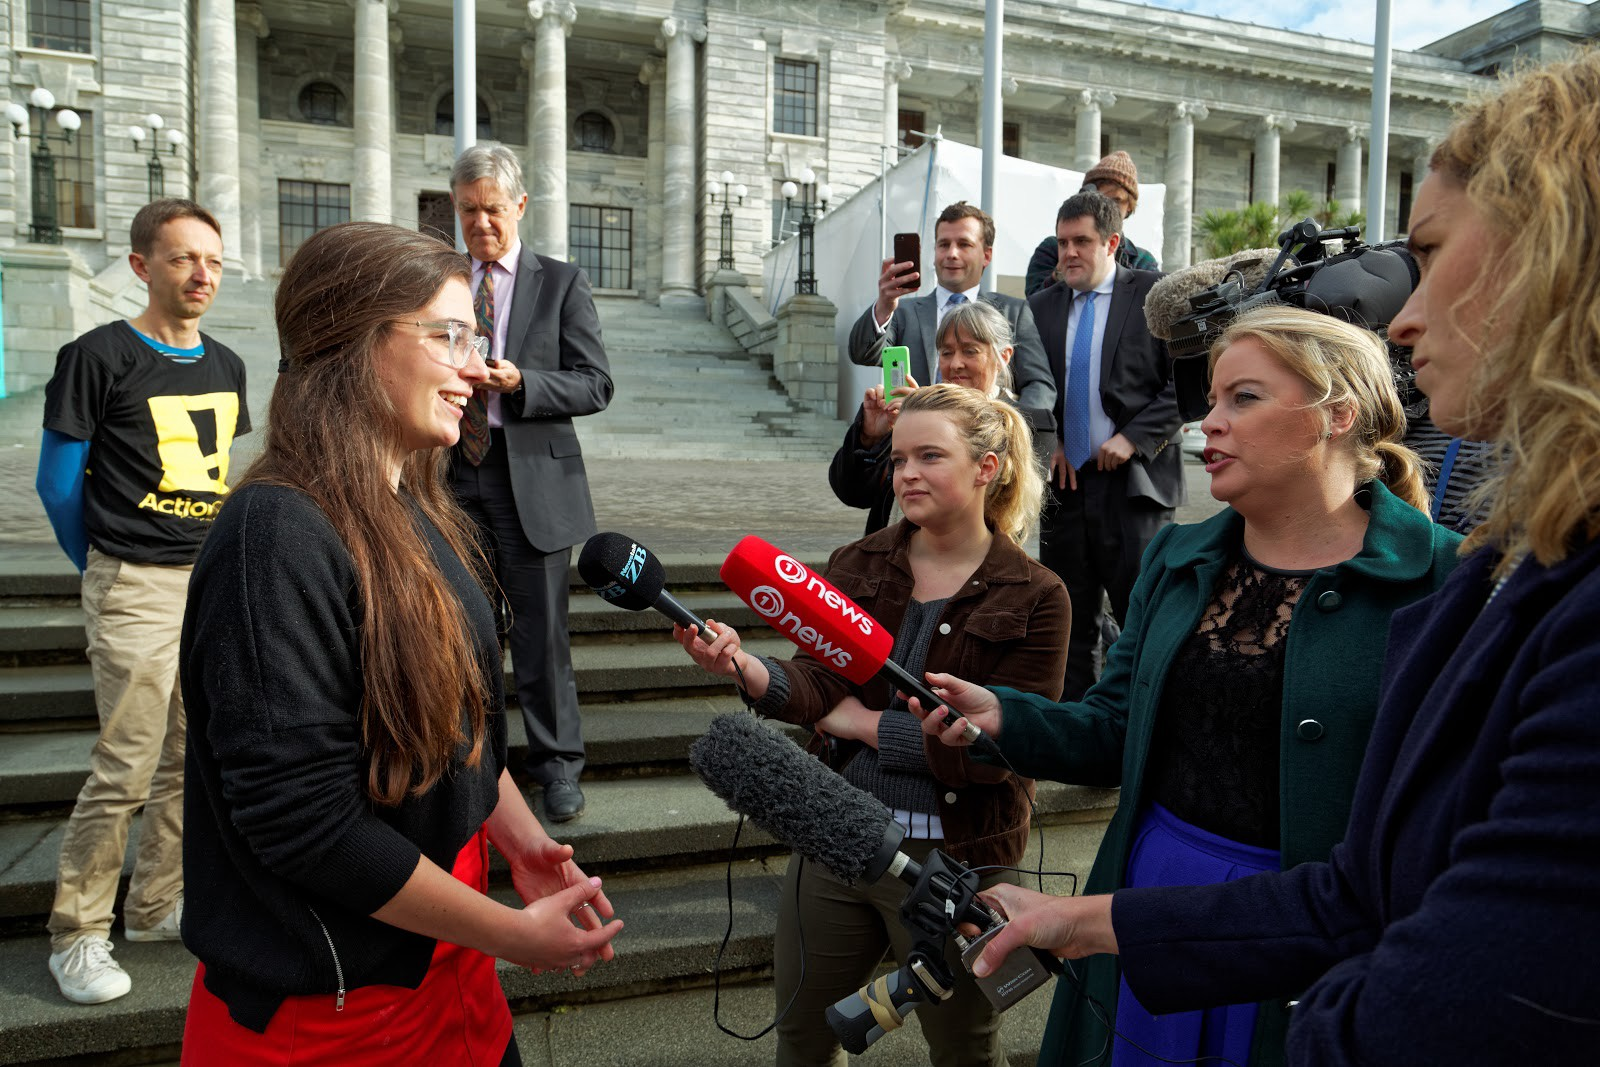 Lucy McSweeney speaks to the media scrum at her petition delivery event for Better Mental Health Education.